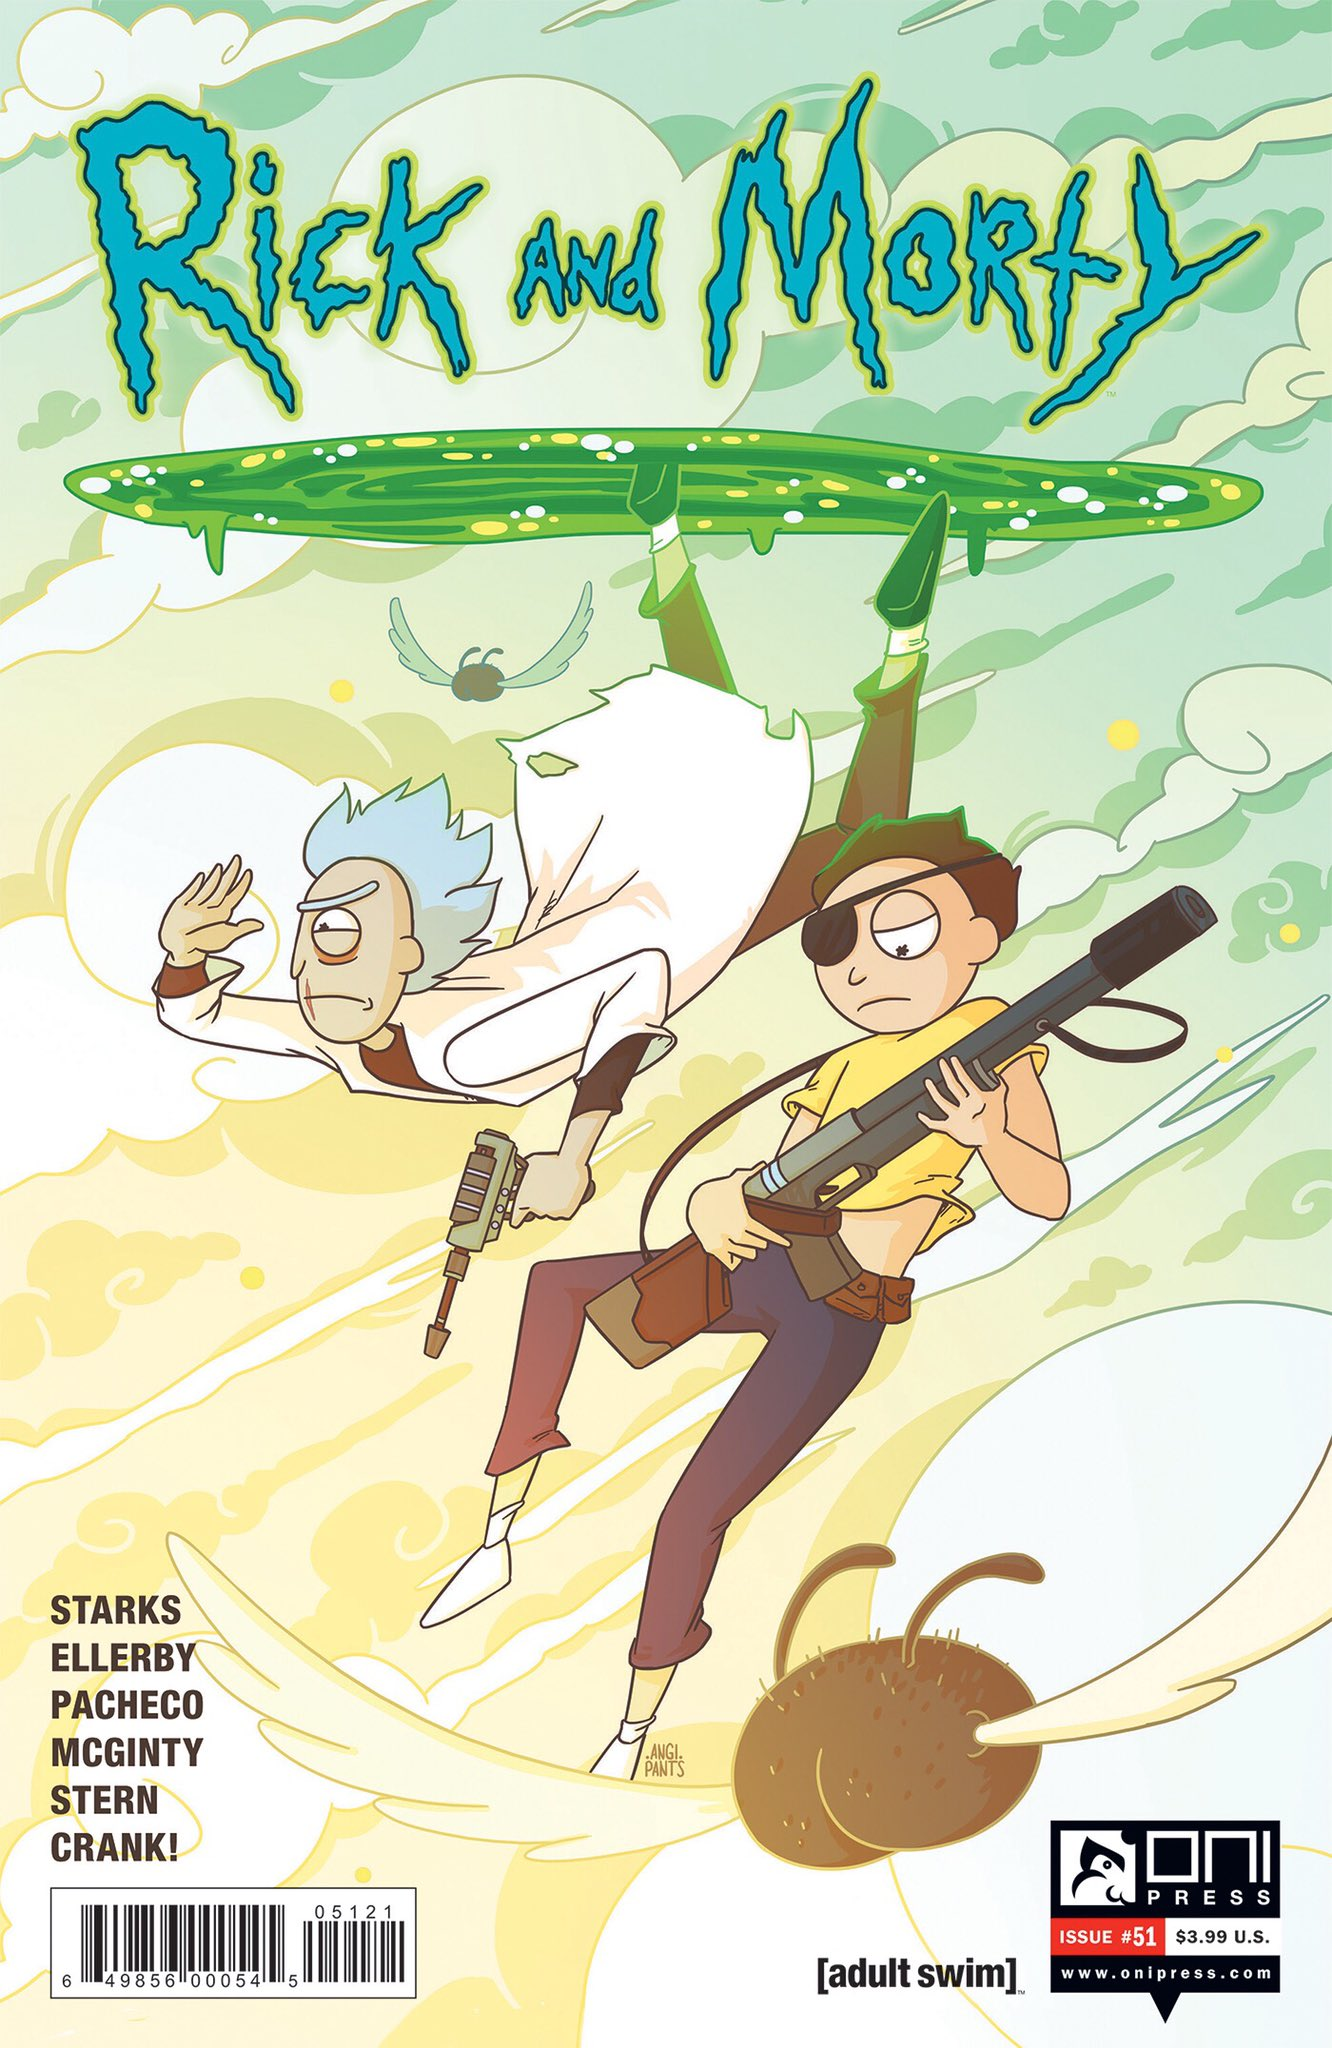 Rick and Morty Issue 51